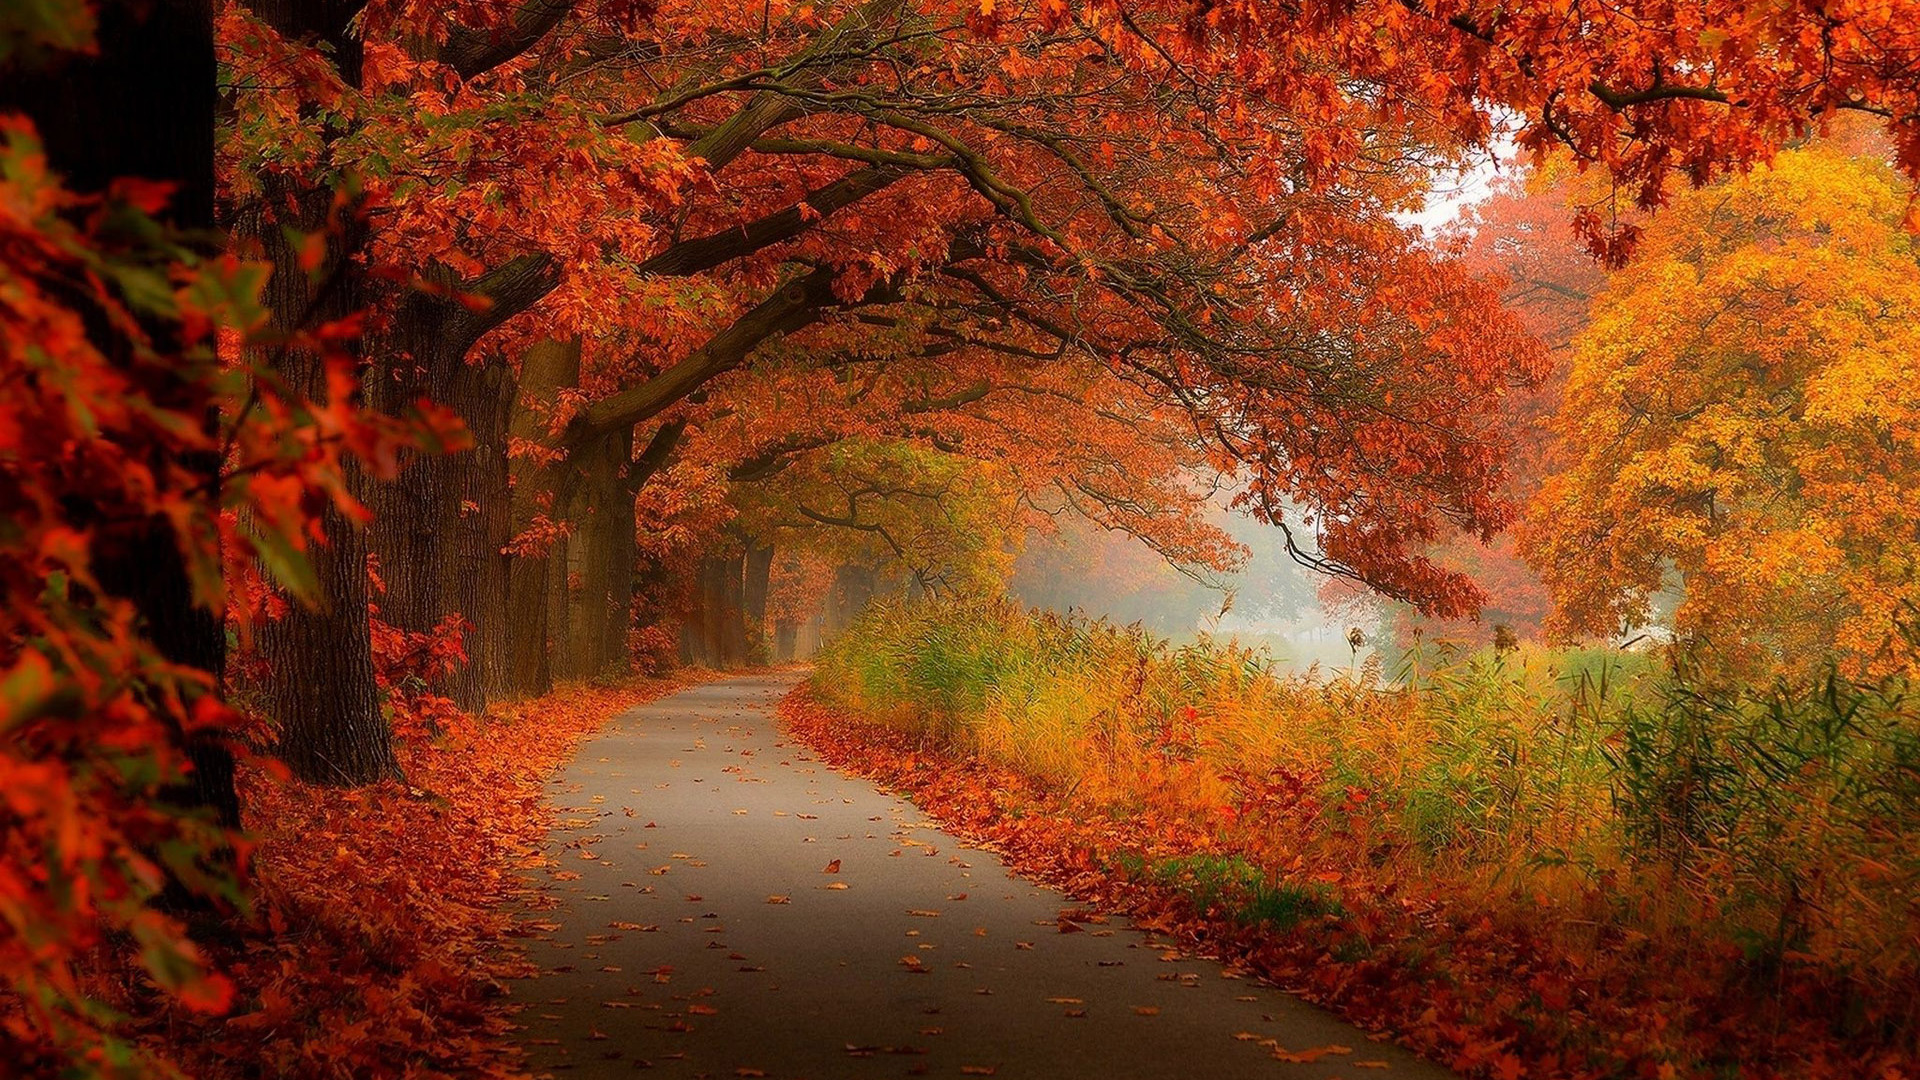 rate 1 tweet 1920x1200 nature leaf forest tree autumn fall foliage 1920x1080